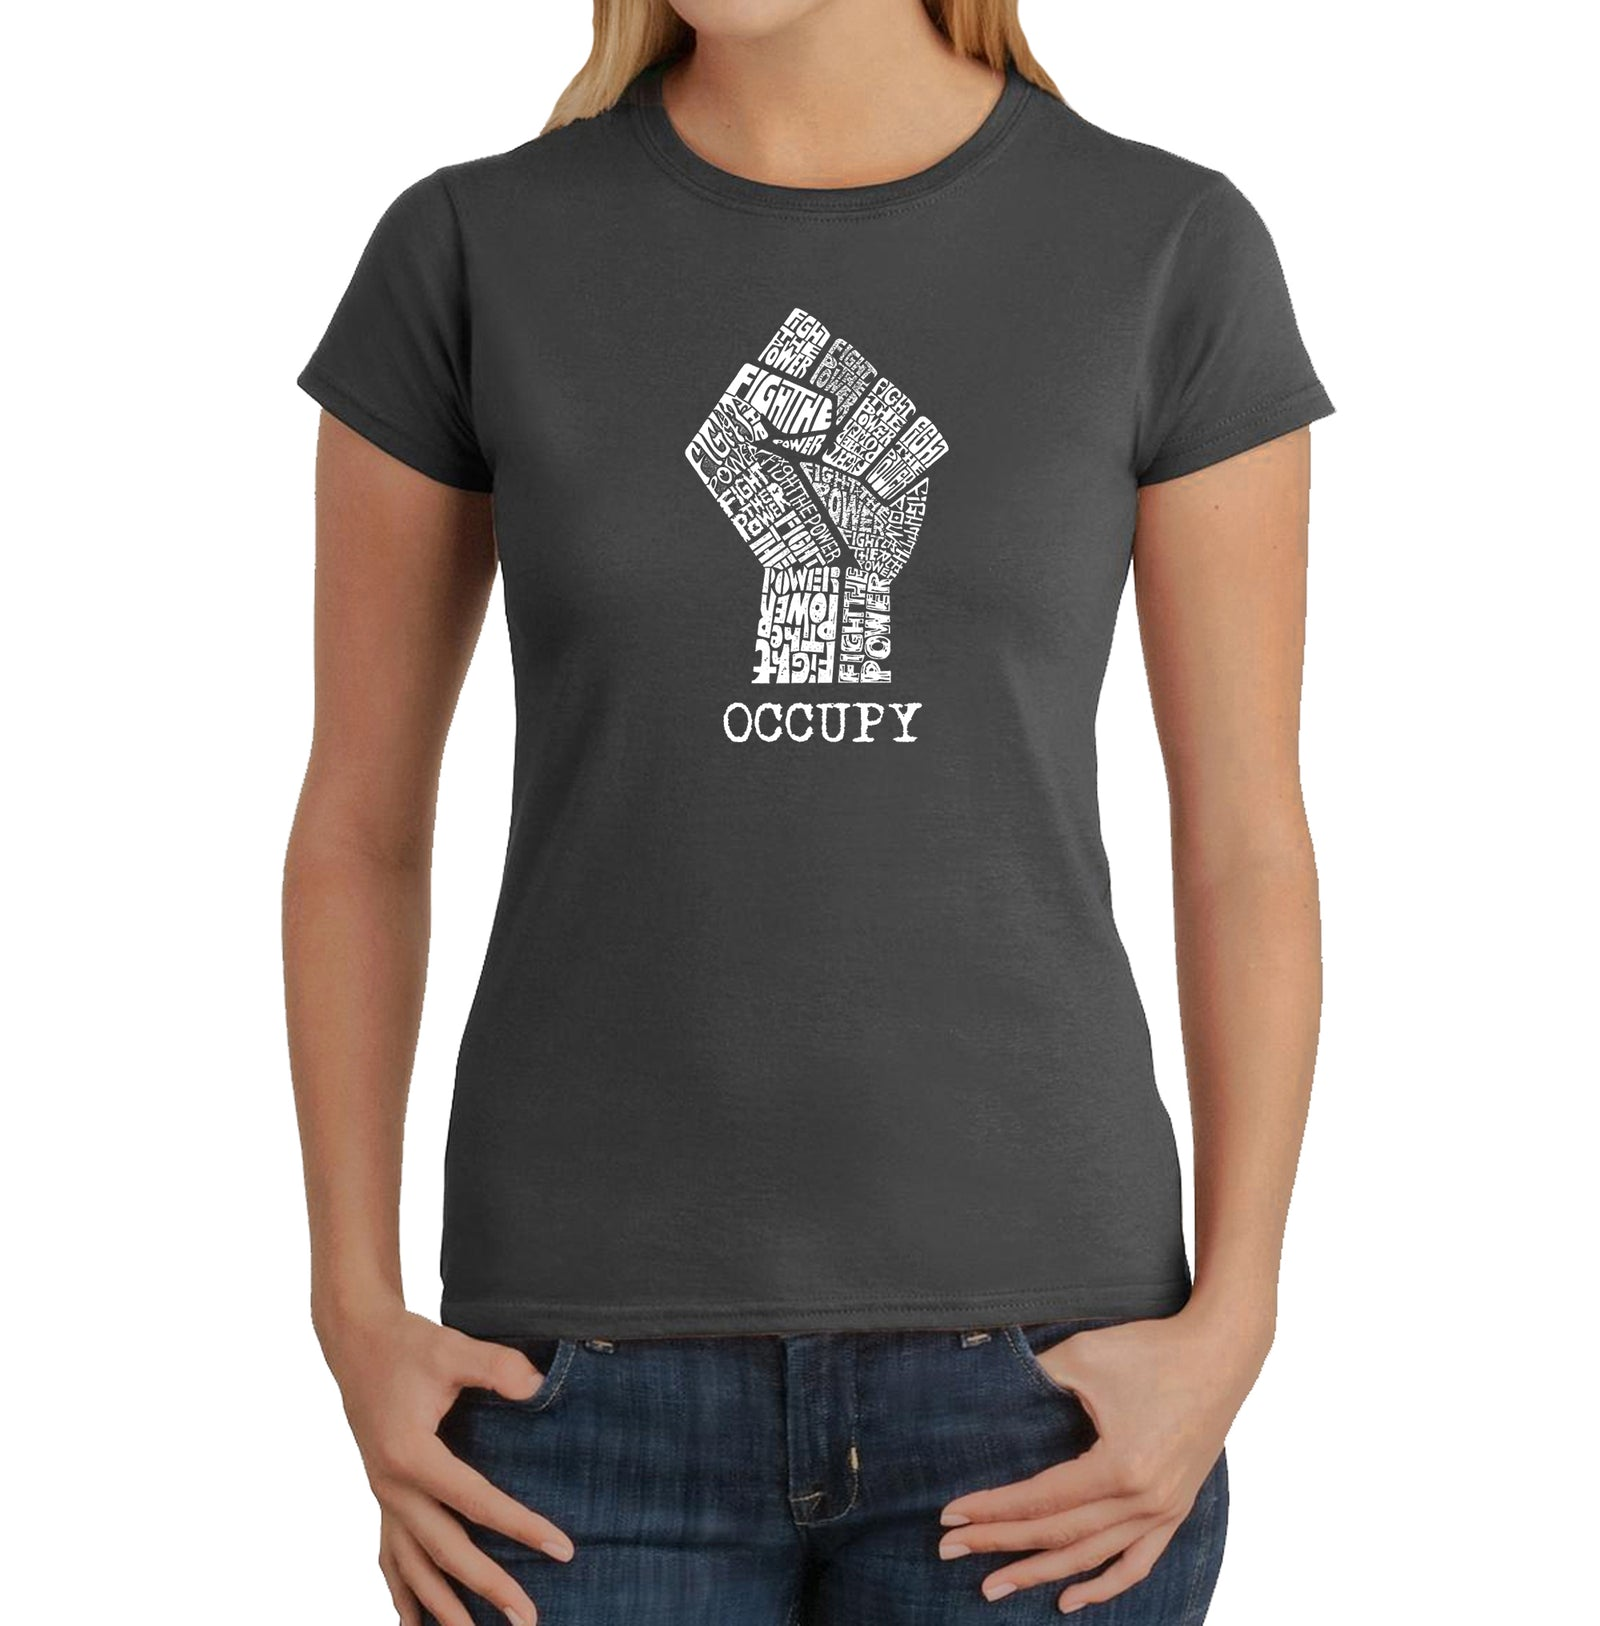 Women's T-Shirt - OCCUPY WALL STREET - FIGHT THE POWER